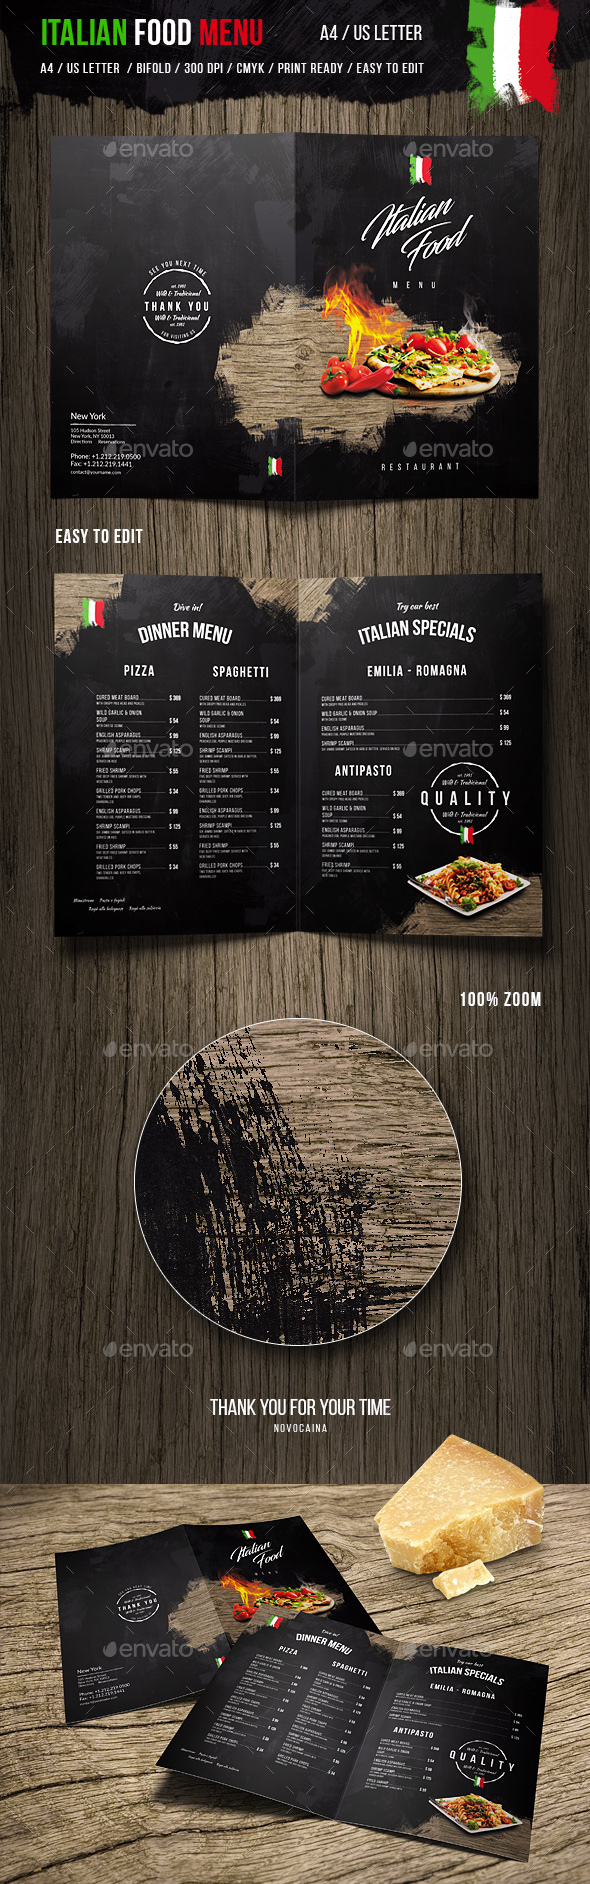 Italian Food Menu - A4 and US Letter - Food Menus Print Templates